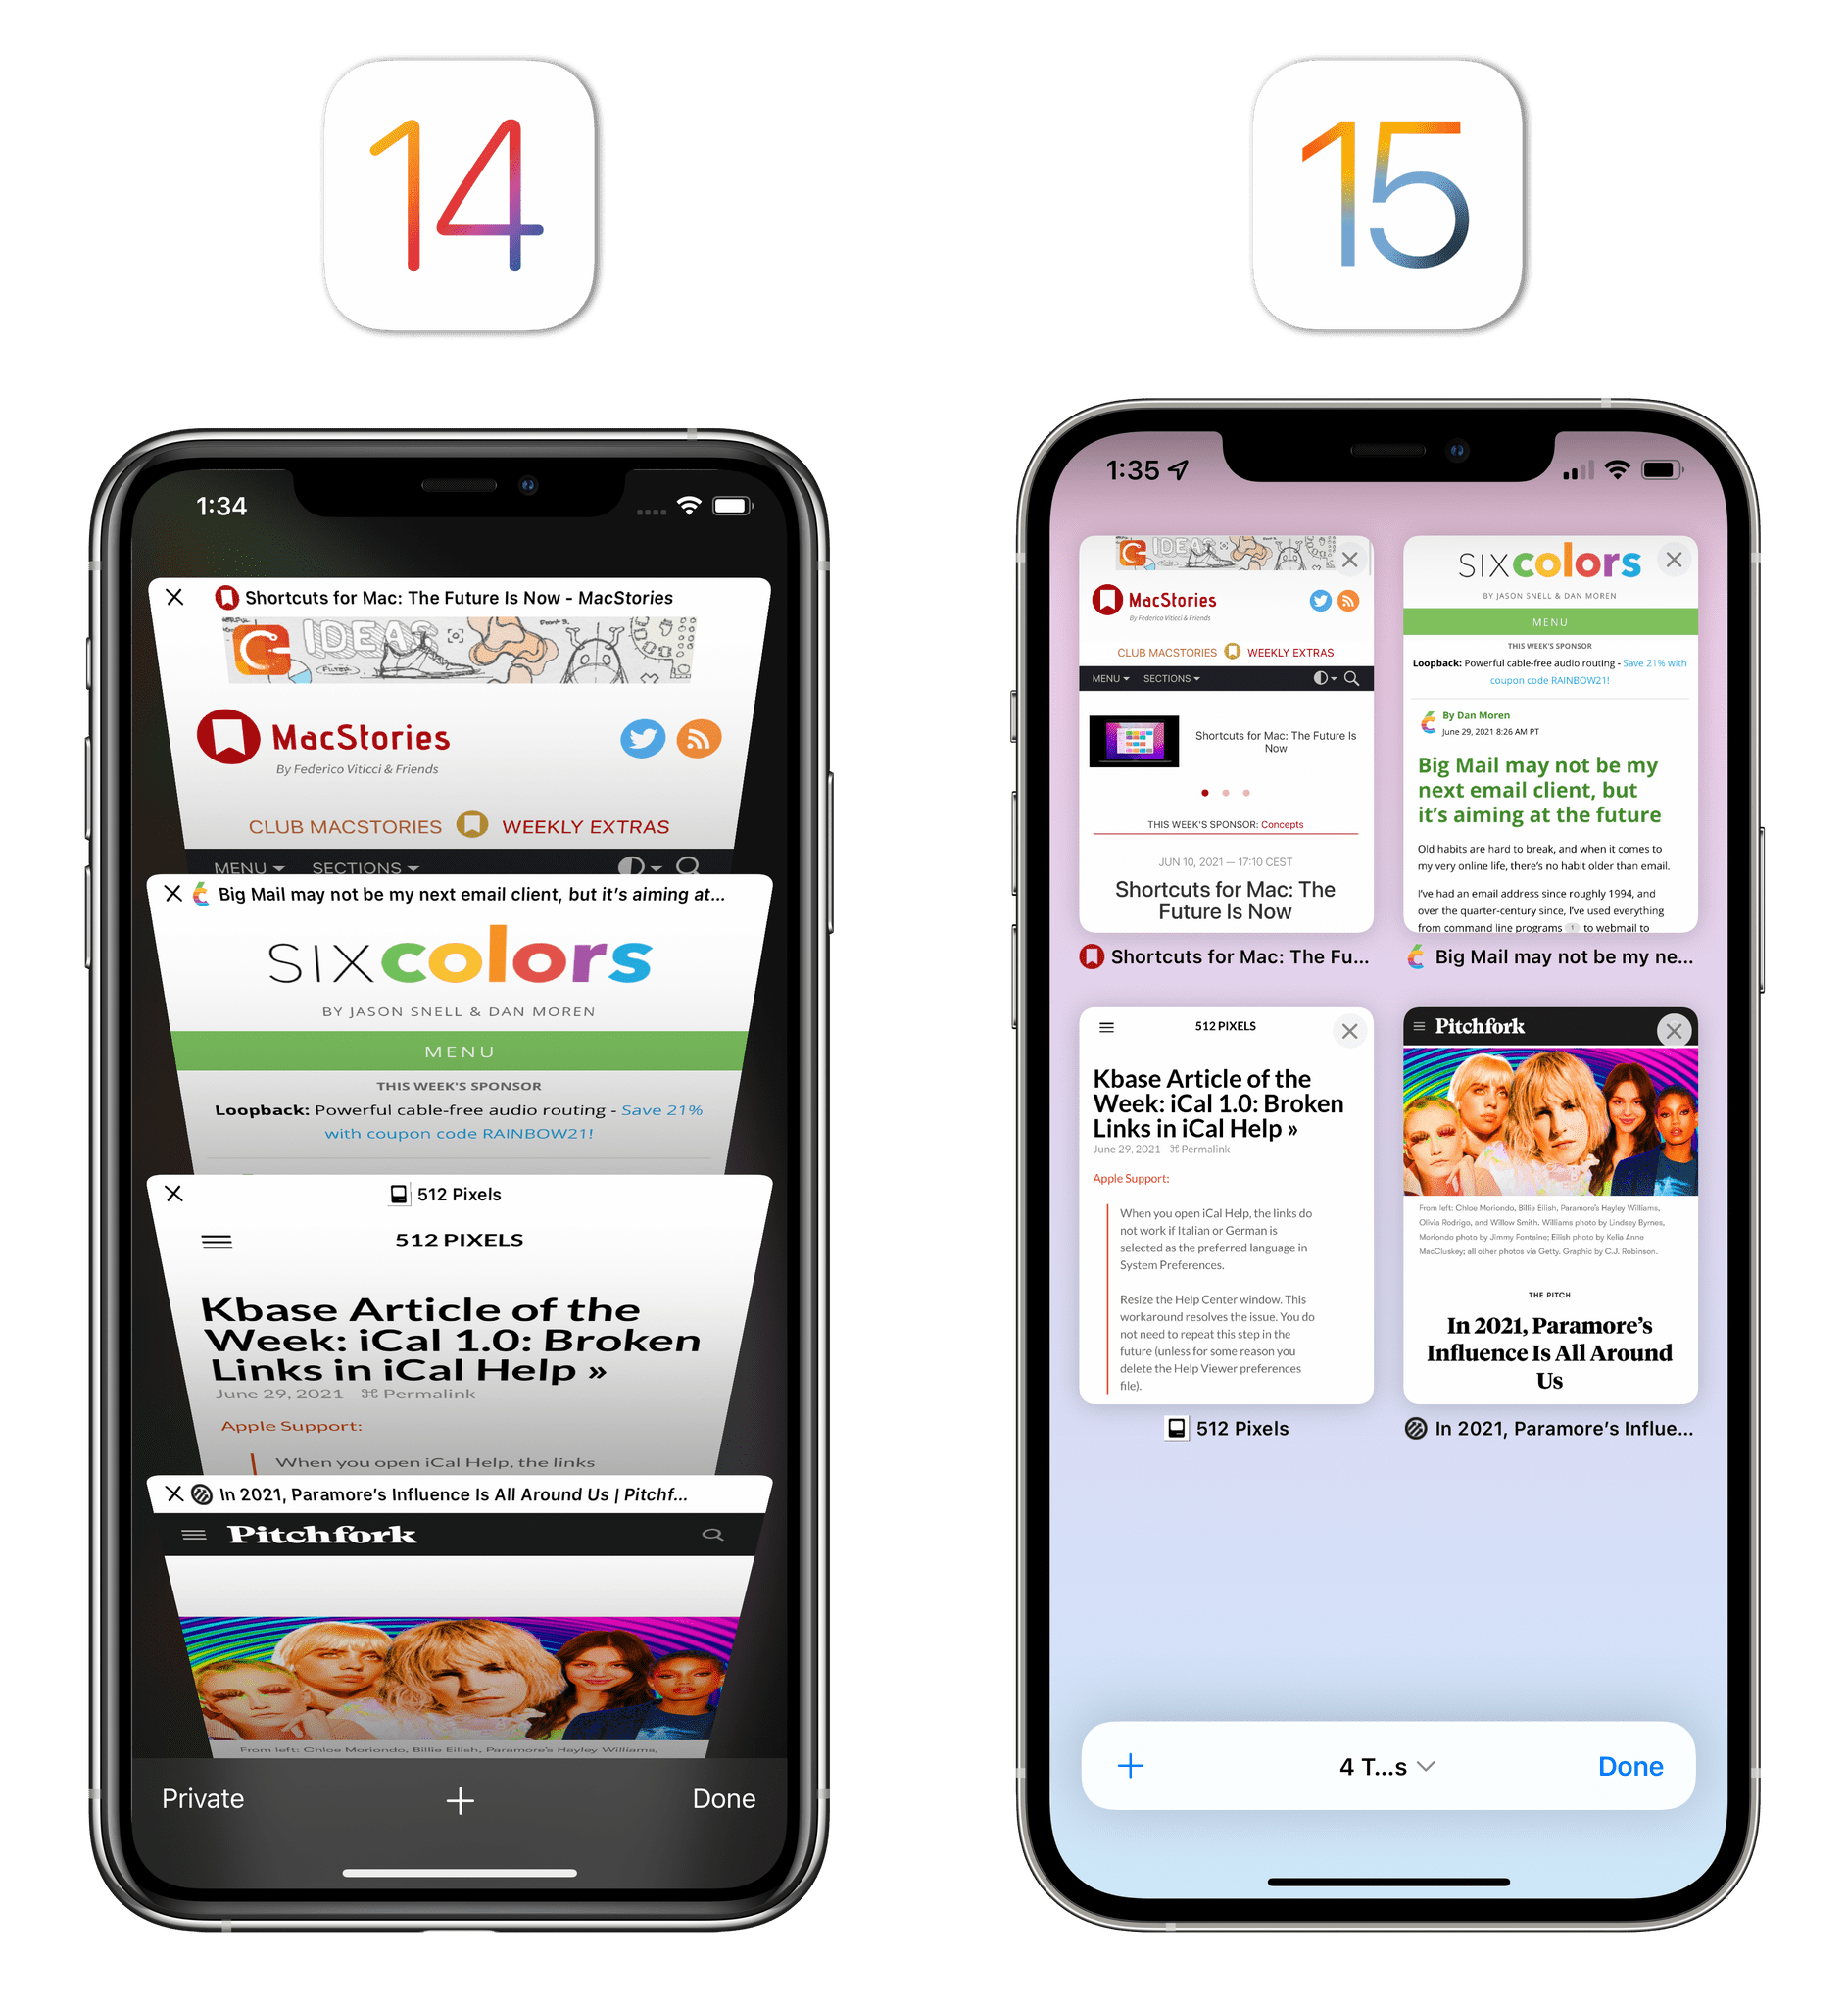 The new tab view is a big win for iOS 15's Safari. It's one of the few elements I'd keep.